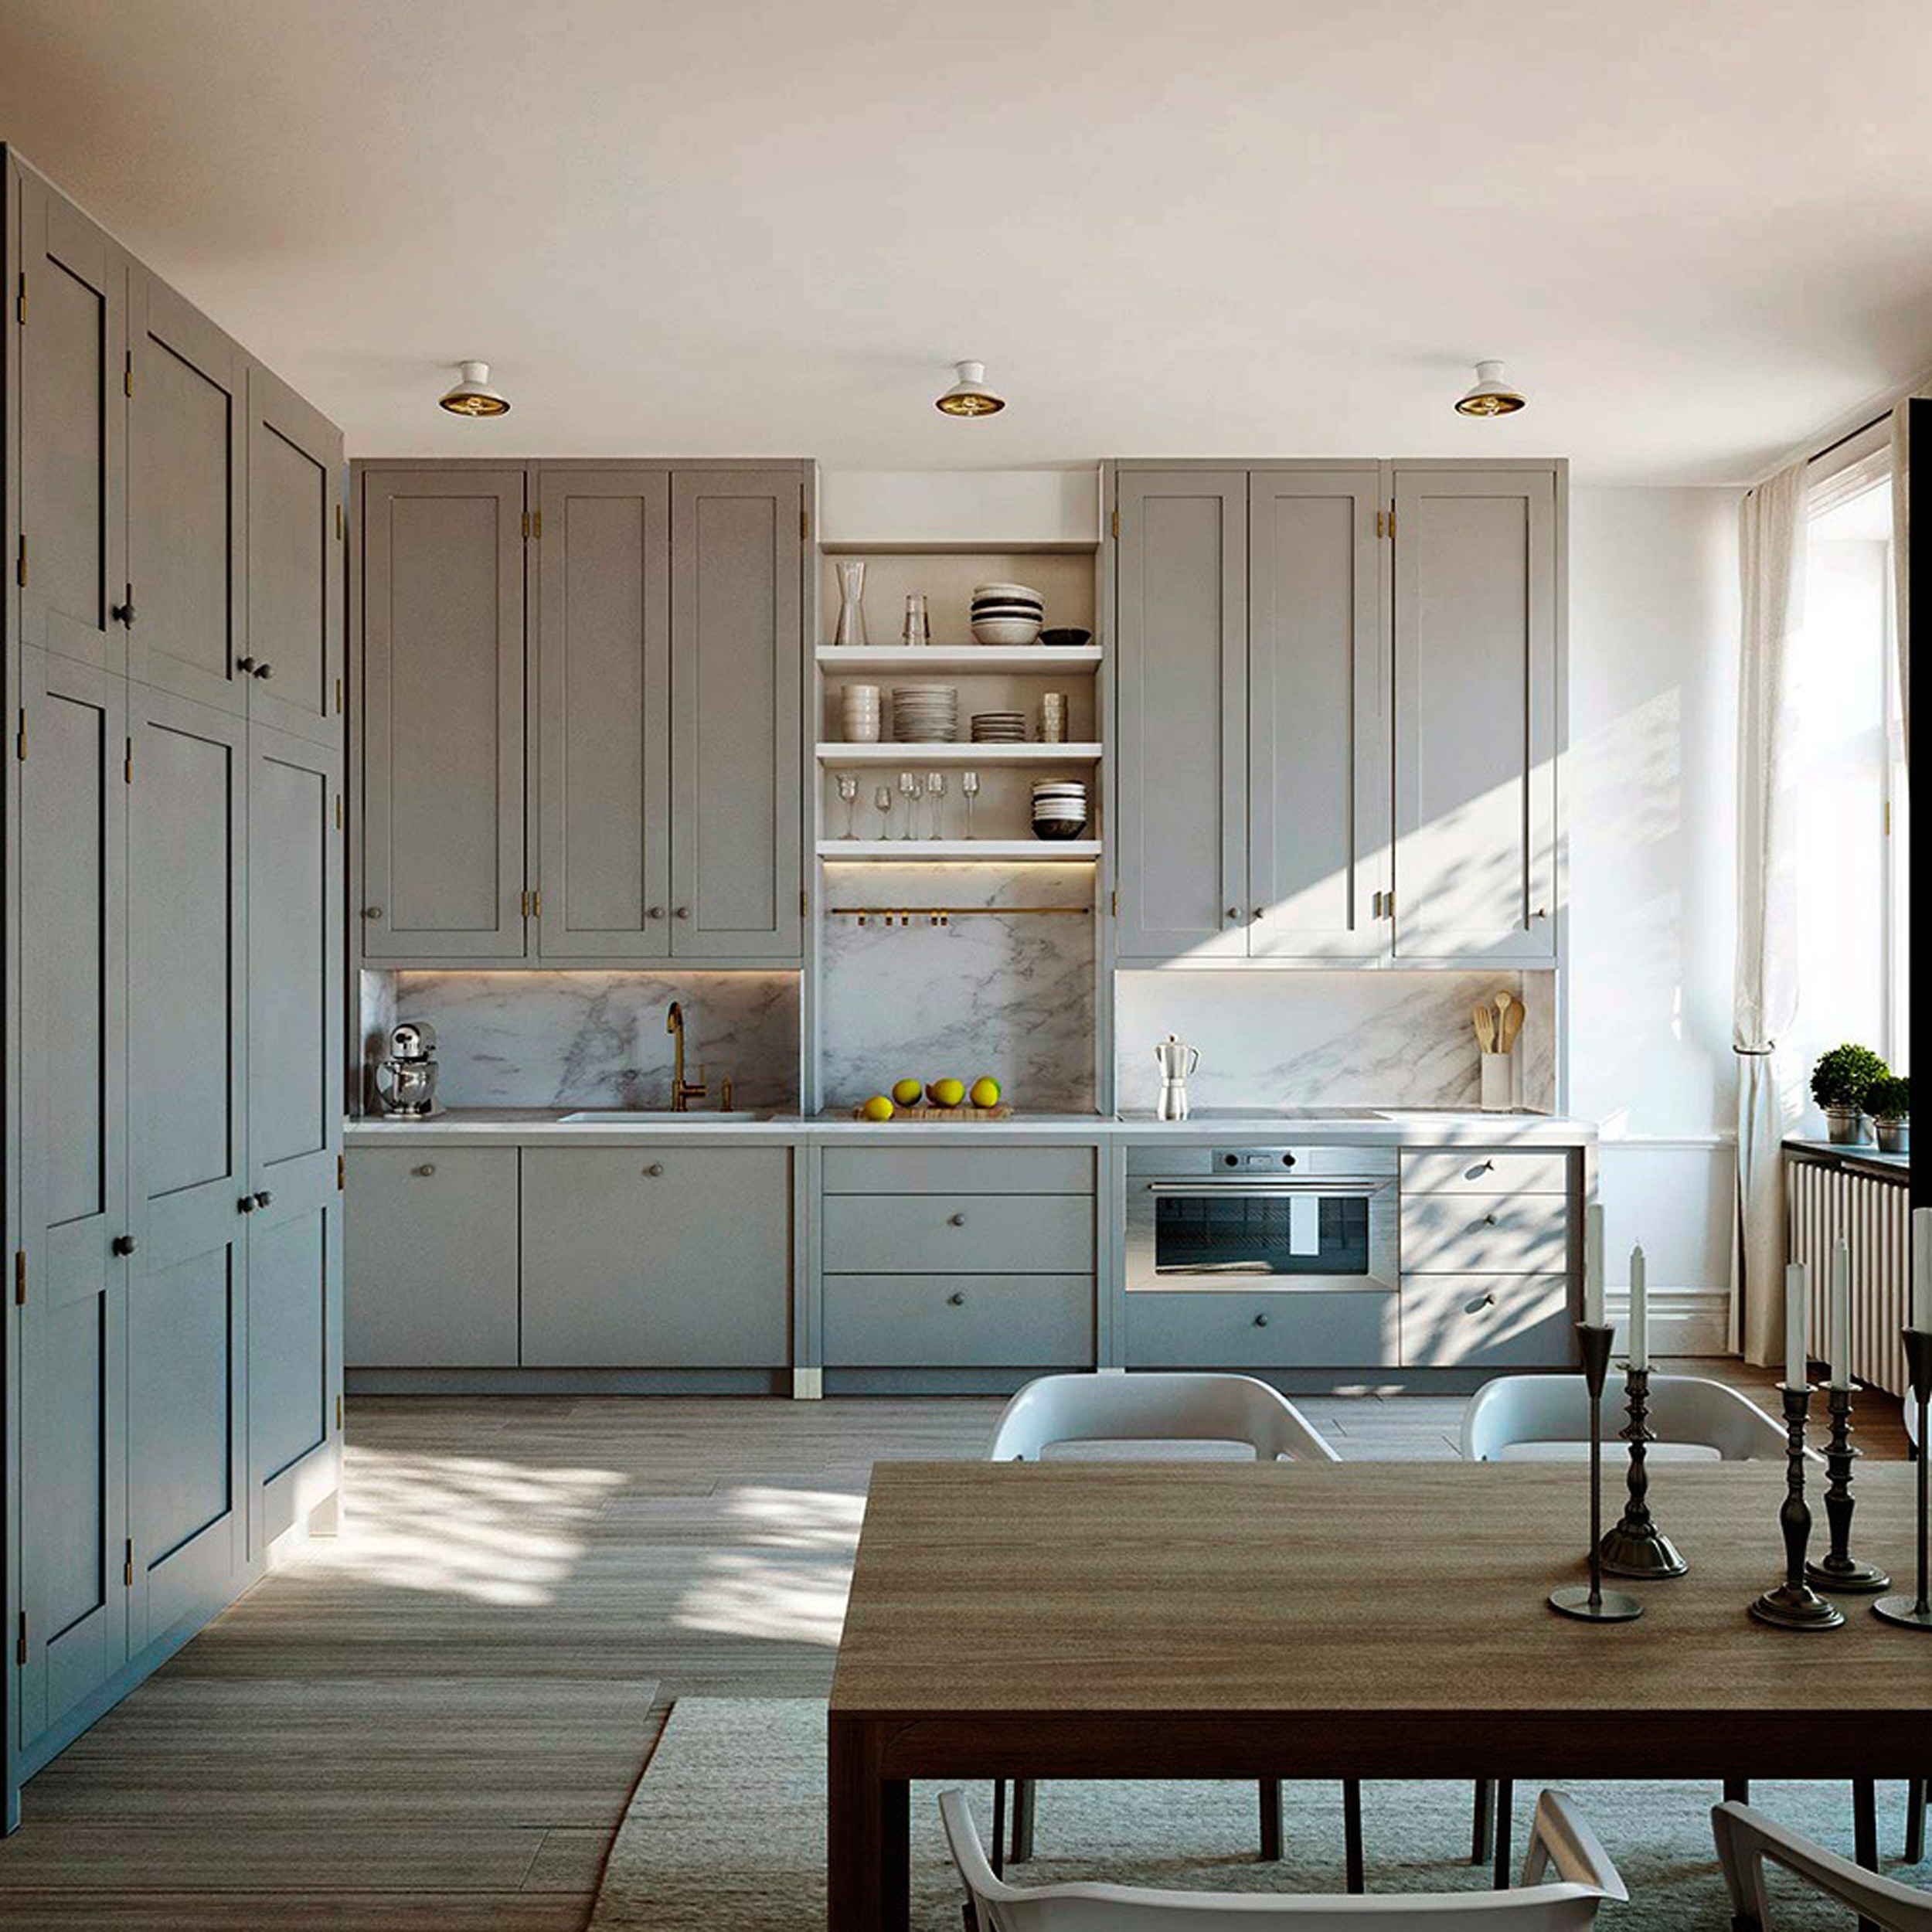 Best ideas about Upper Kitchen Cabinets . Save or Pin How We re Designing Our Kitchen Thoughts Cabinet Now.